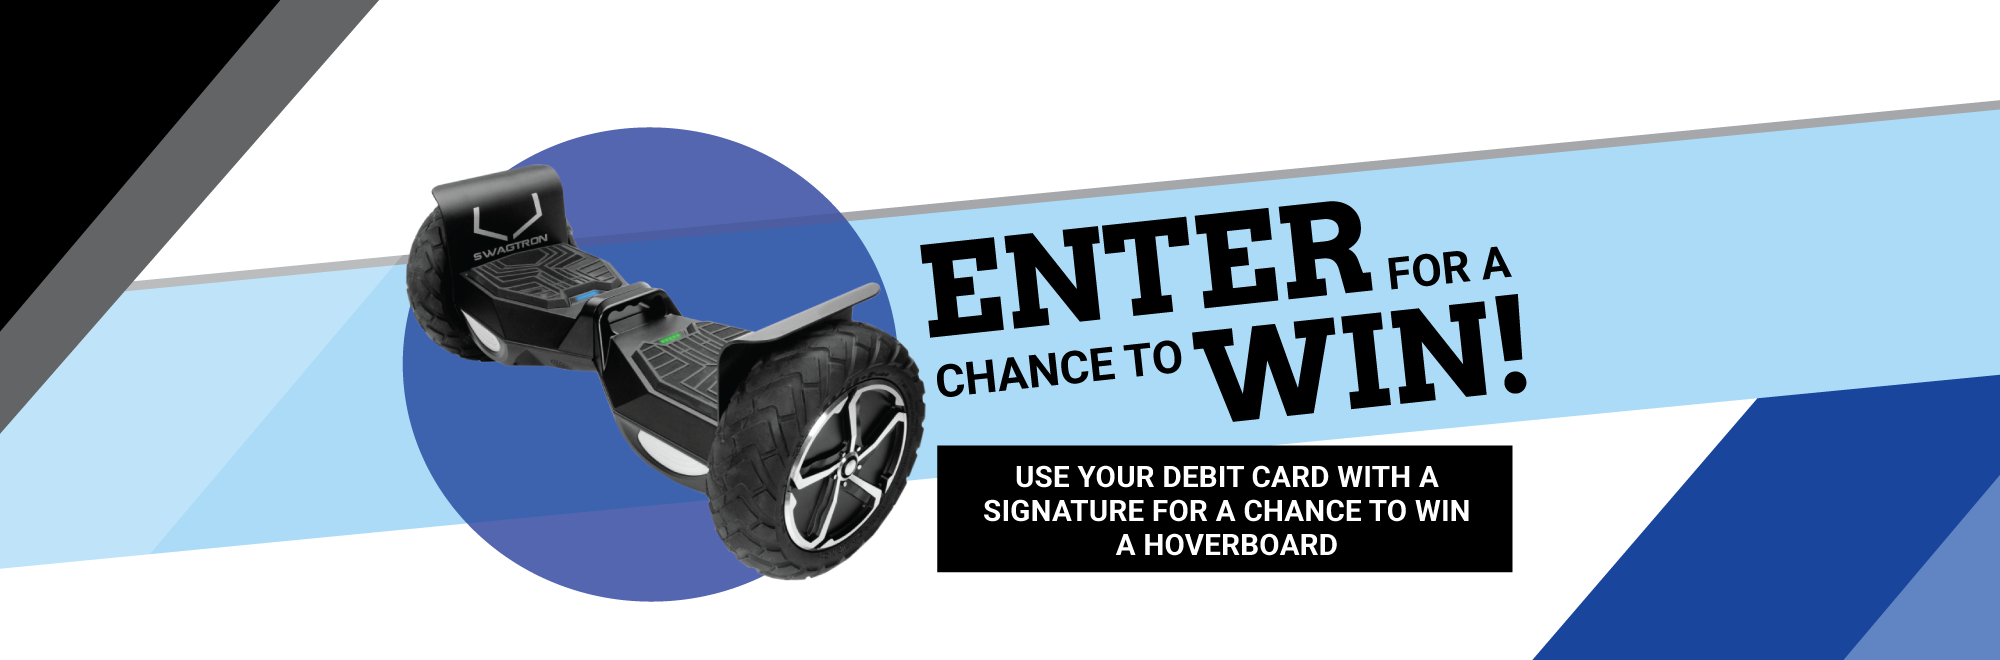 Use your debit card & win!